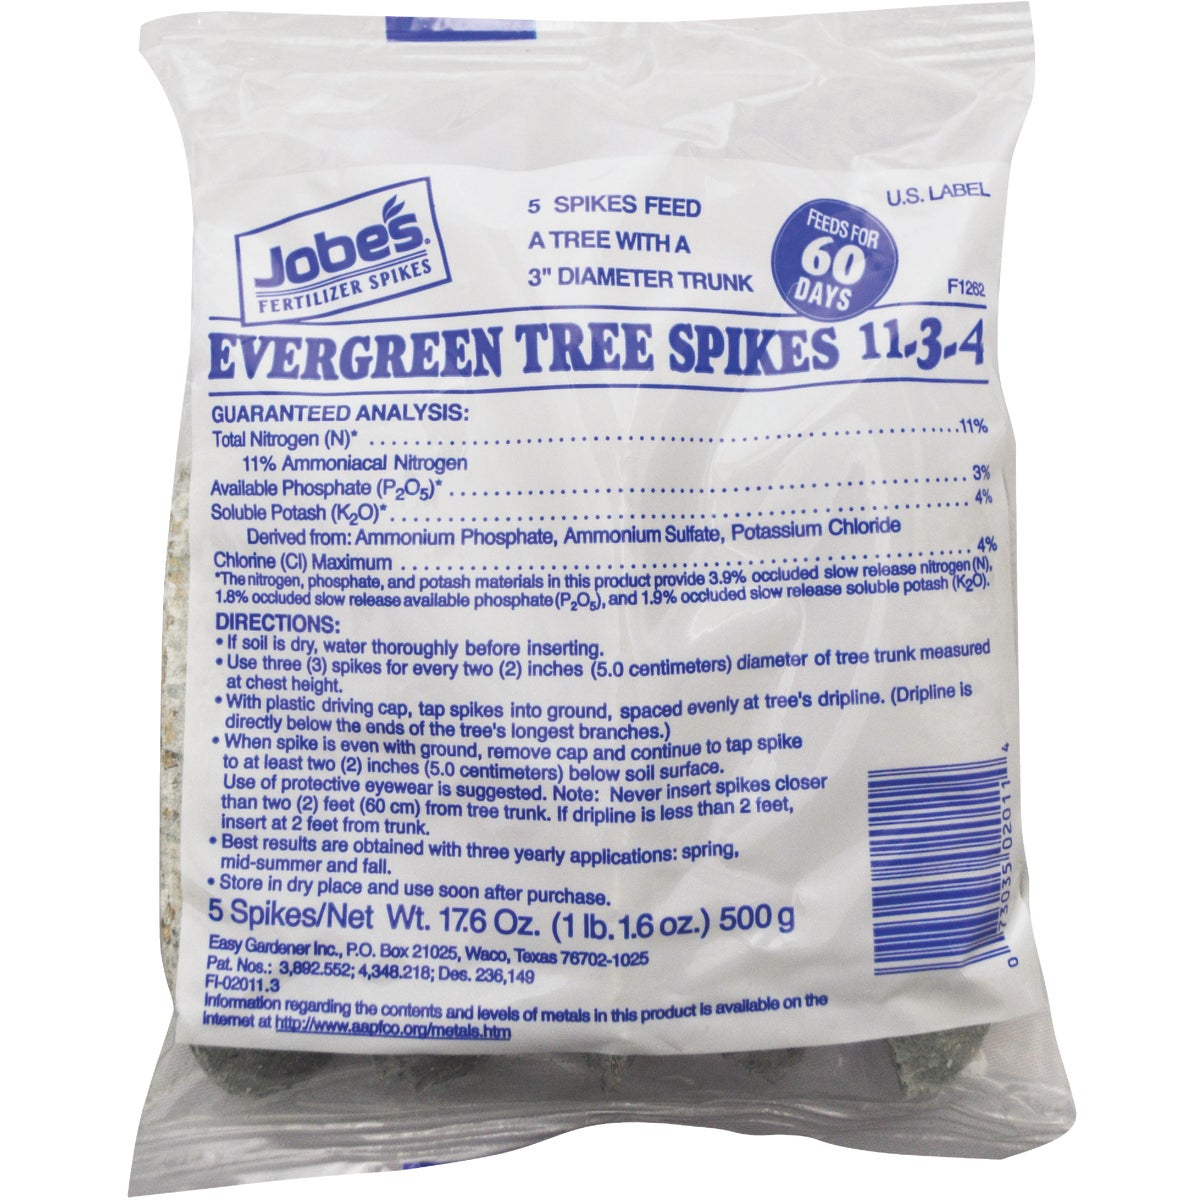 5PK EVERGREEN FERT SPIKE - 02011 by Easy Gardener Inc